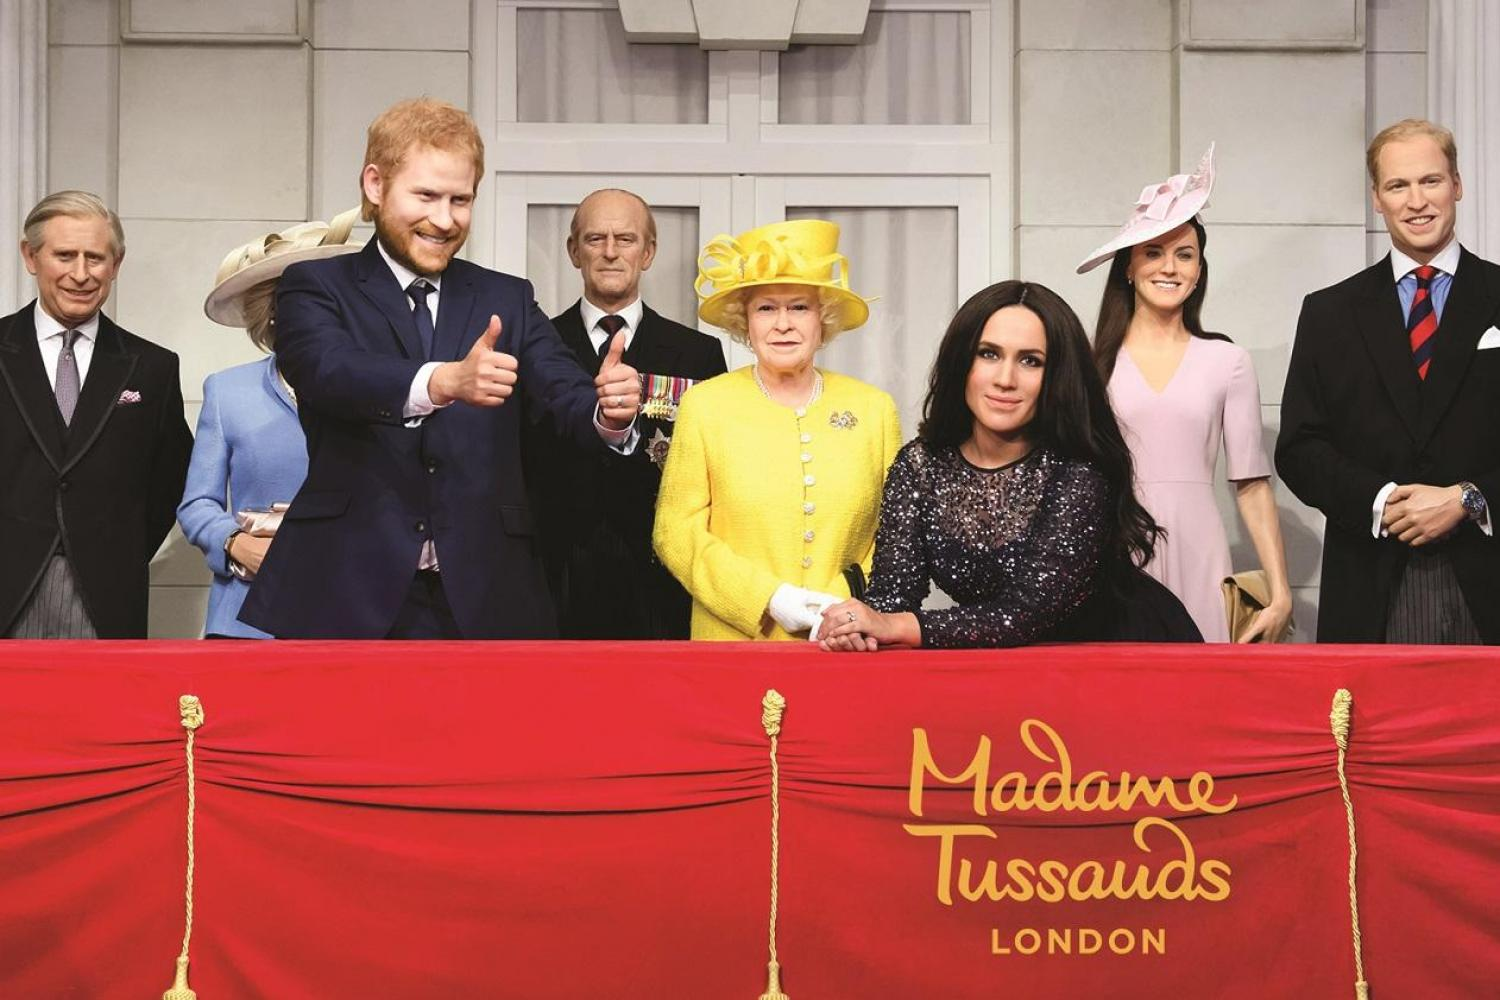 Image result for madame tussauds london